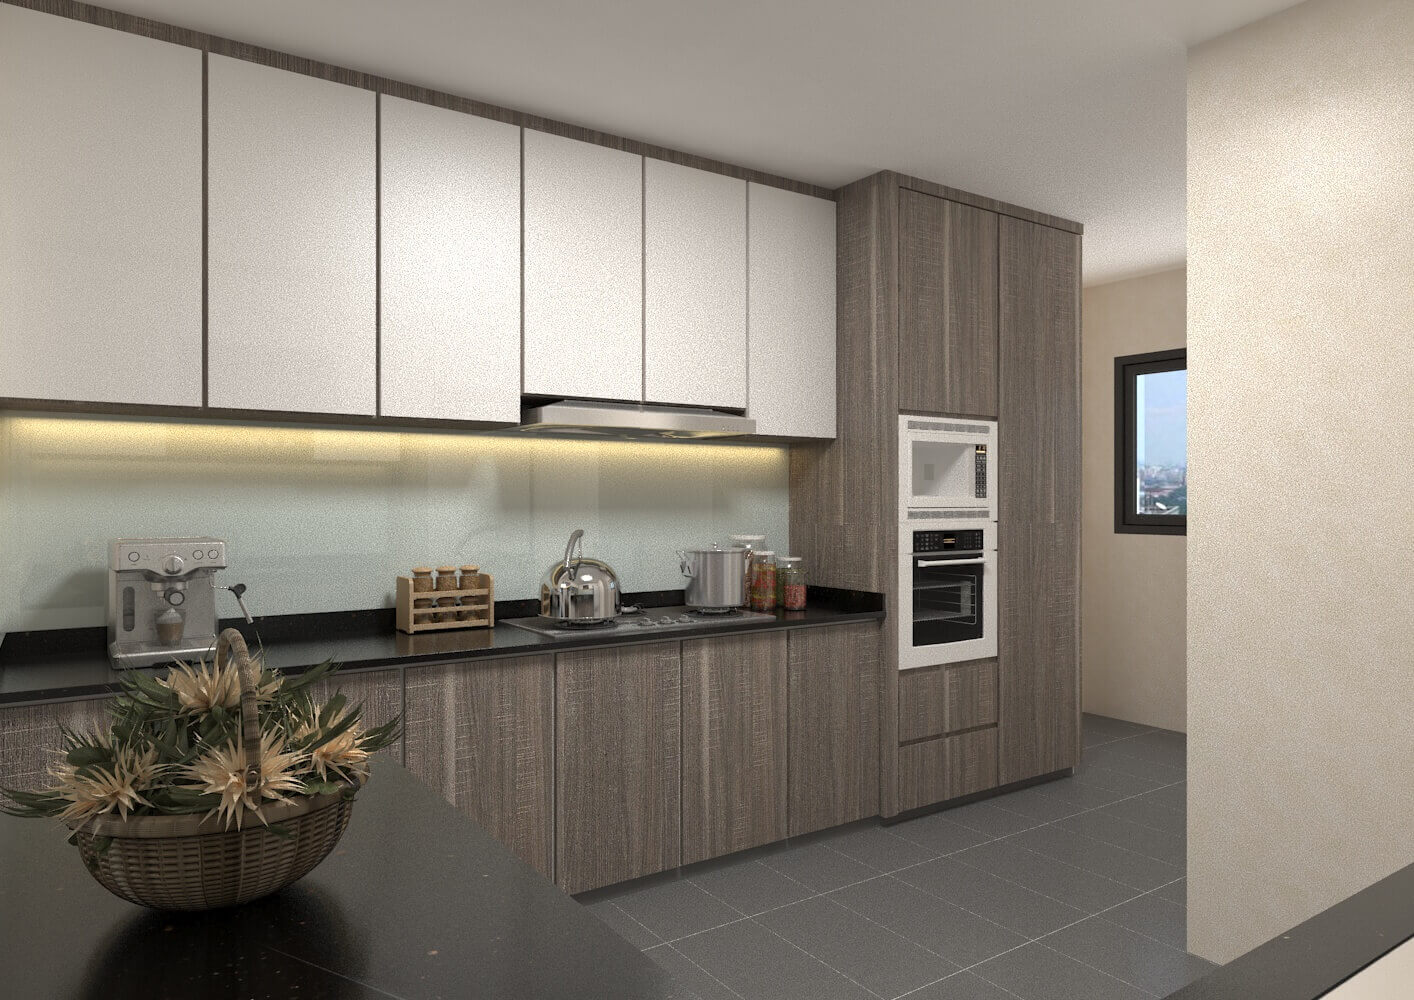 4 Room HDB4 Room HDB Laurus Design Pte Ltd  Hdb 4 Room Kitchen Design. Hdb 4 Room Kitchen Design  Interior design by Rezt n Relax of